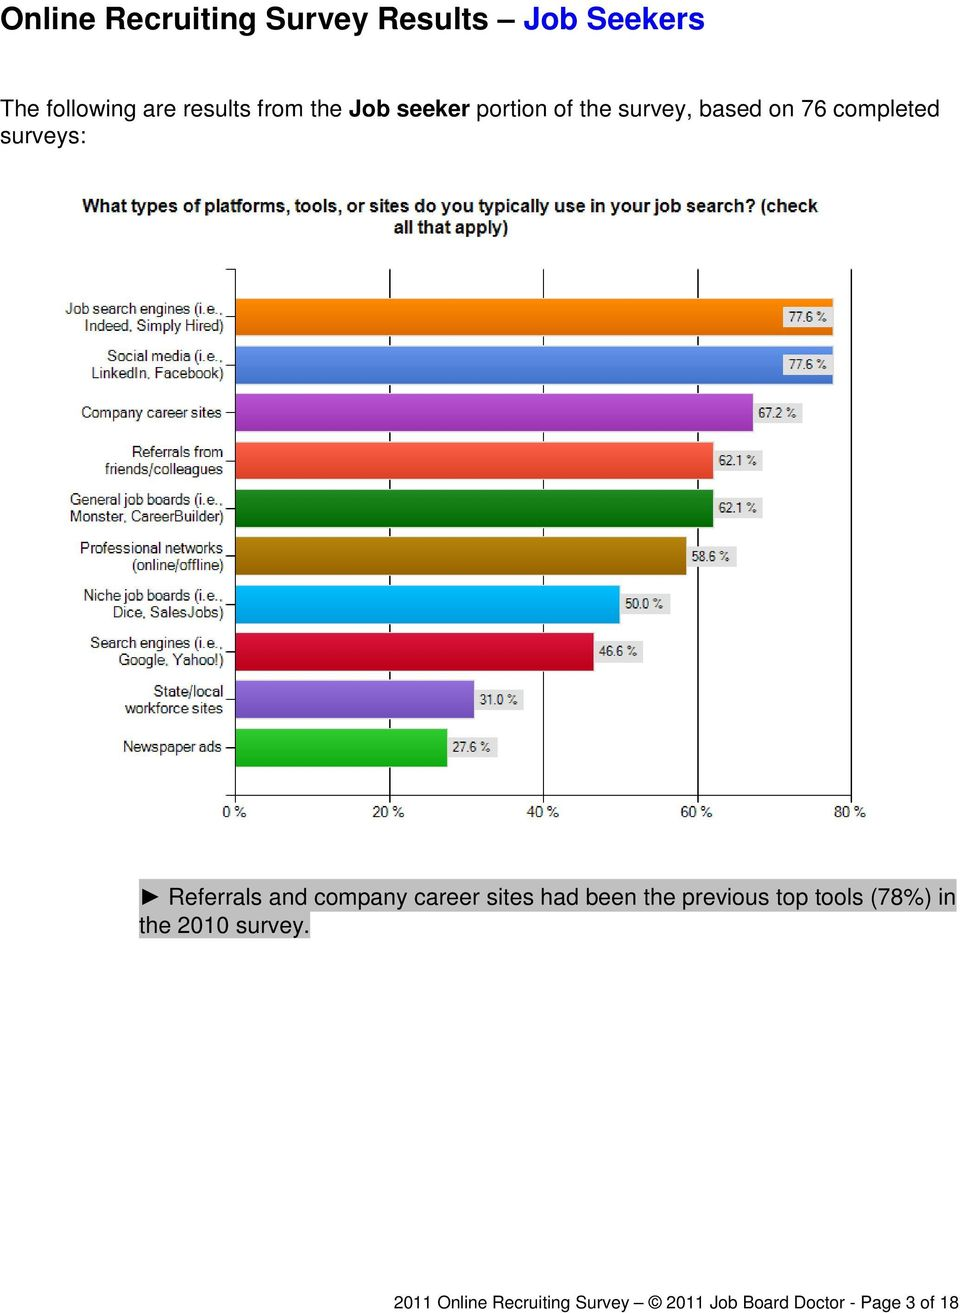 Referrals and company career sites had been the previous top tools (78%) in